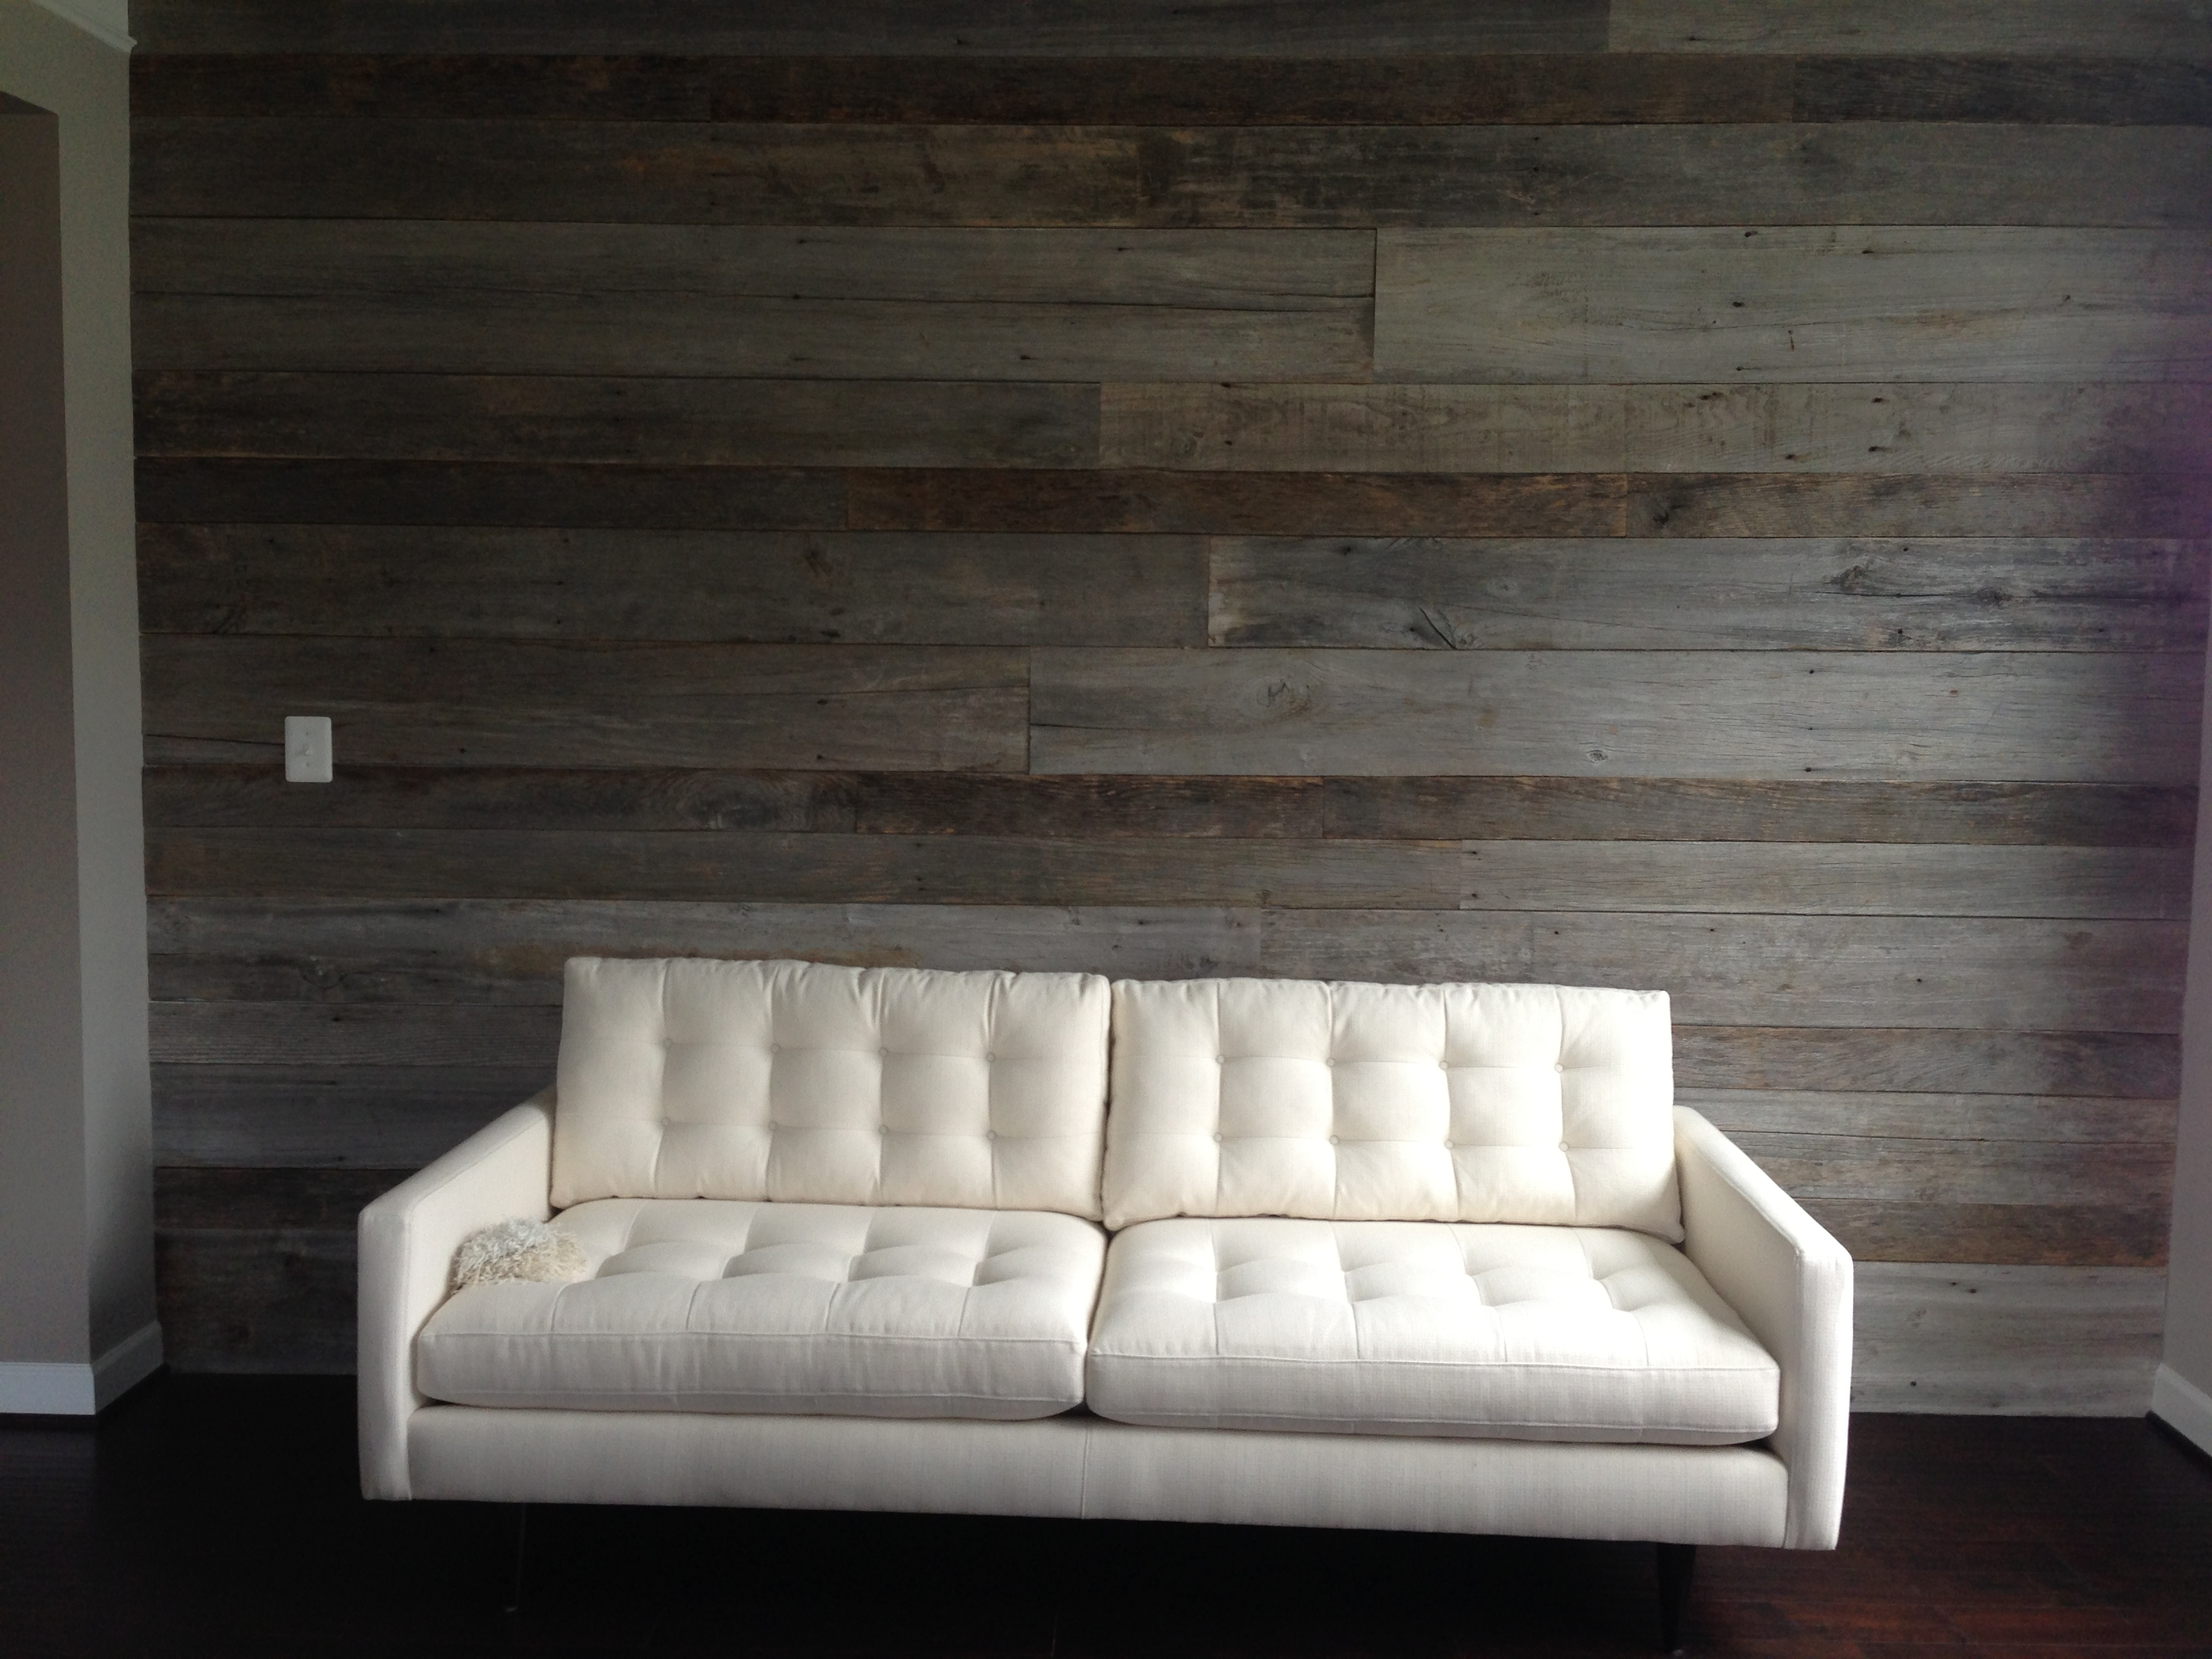 Of Reclaimed Wood Wall Art Rukle After Image Decor Paneling Throughout Most Current Dark Wood Wall Art (View 13 of 15)